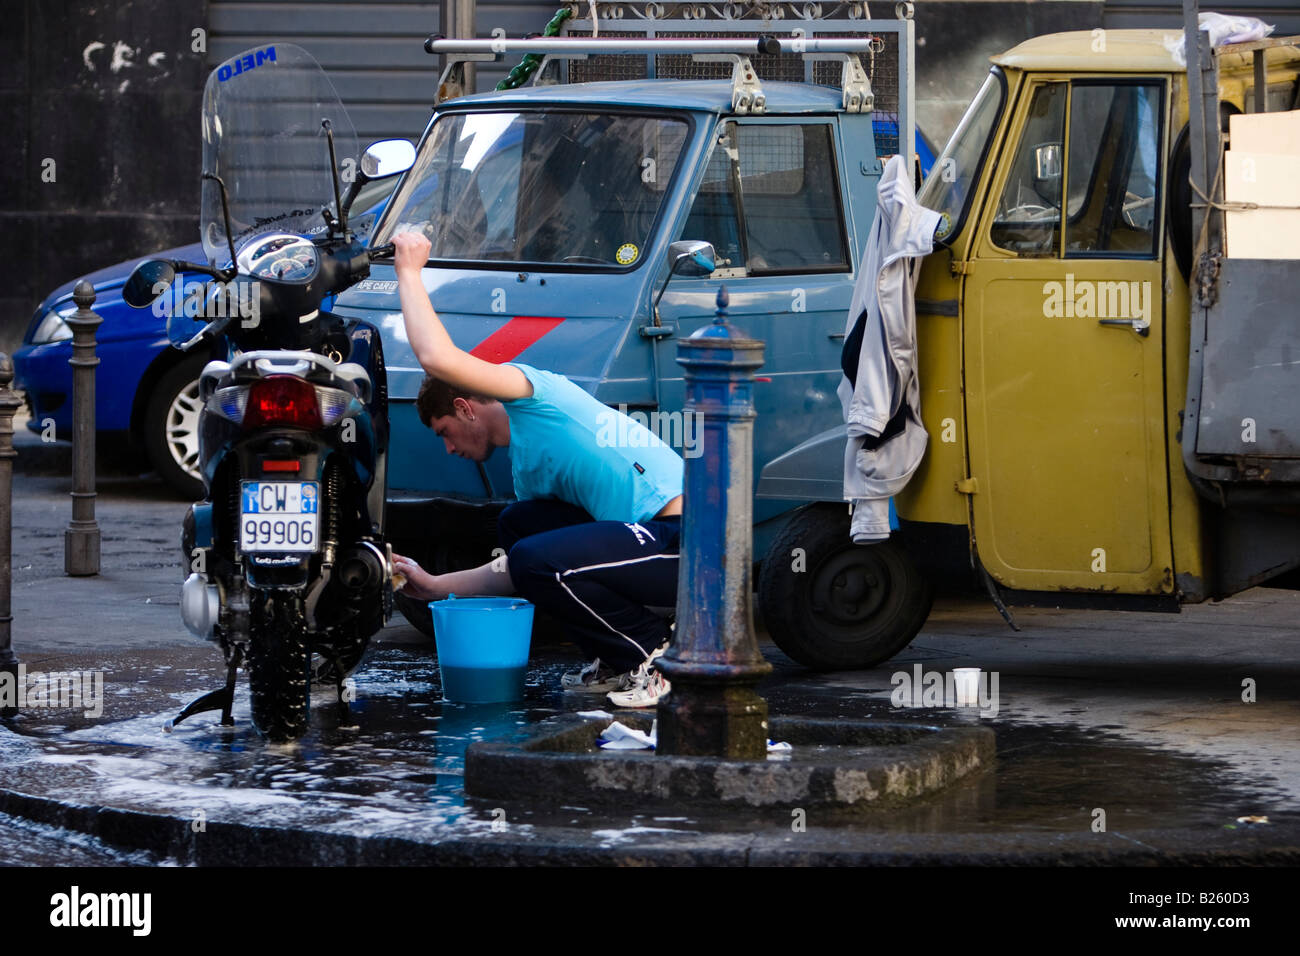 Young man washes a motorbike on a street in Catania, Sicily, Italy - Stock Image